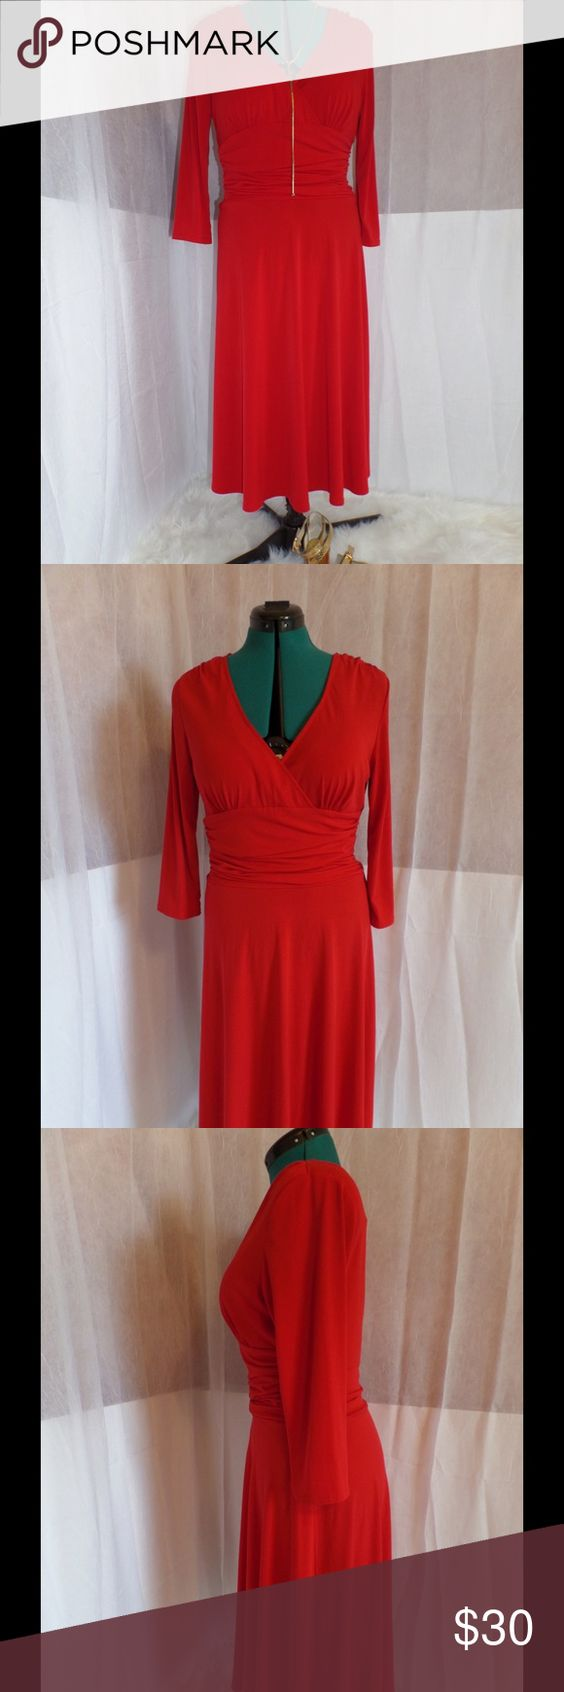 Alan Paige New York Red Faux Wrap Dress HOT red faux wrap dress by Alyn Paige. Lightly worn with no tears, marks, or stains. Like new. Silky stretchy fabric that looks amazing on anywhere from size 8 to size 12. Three-quarter sleeves to keep things classy. Can be worn dressed up for a night of dancing or down with a denim vest and sandals. Be the lady in red.... Alyn Paige Dresses